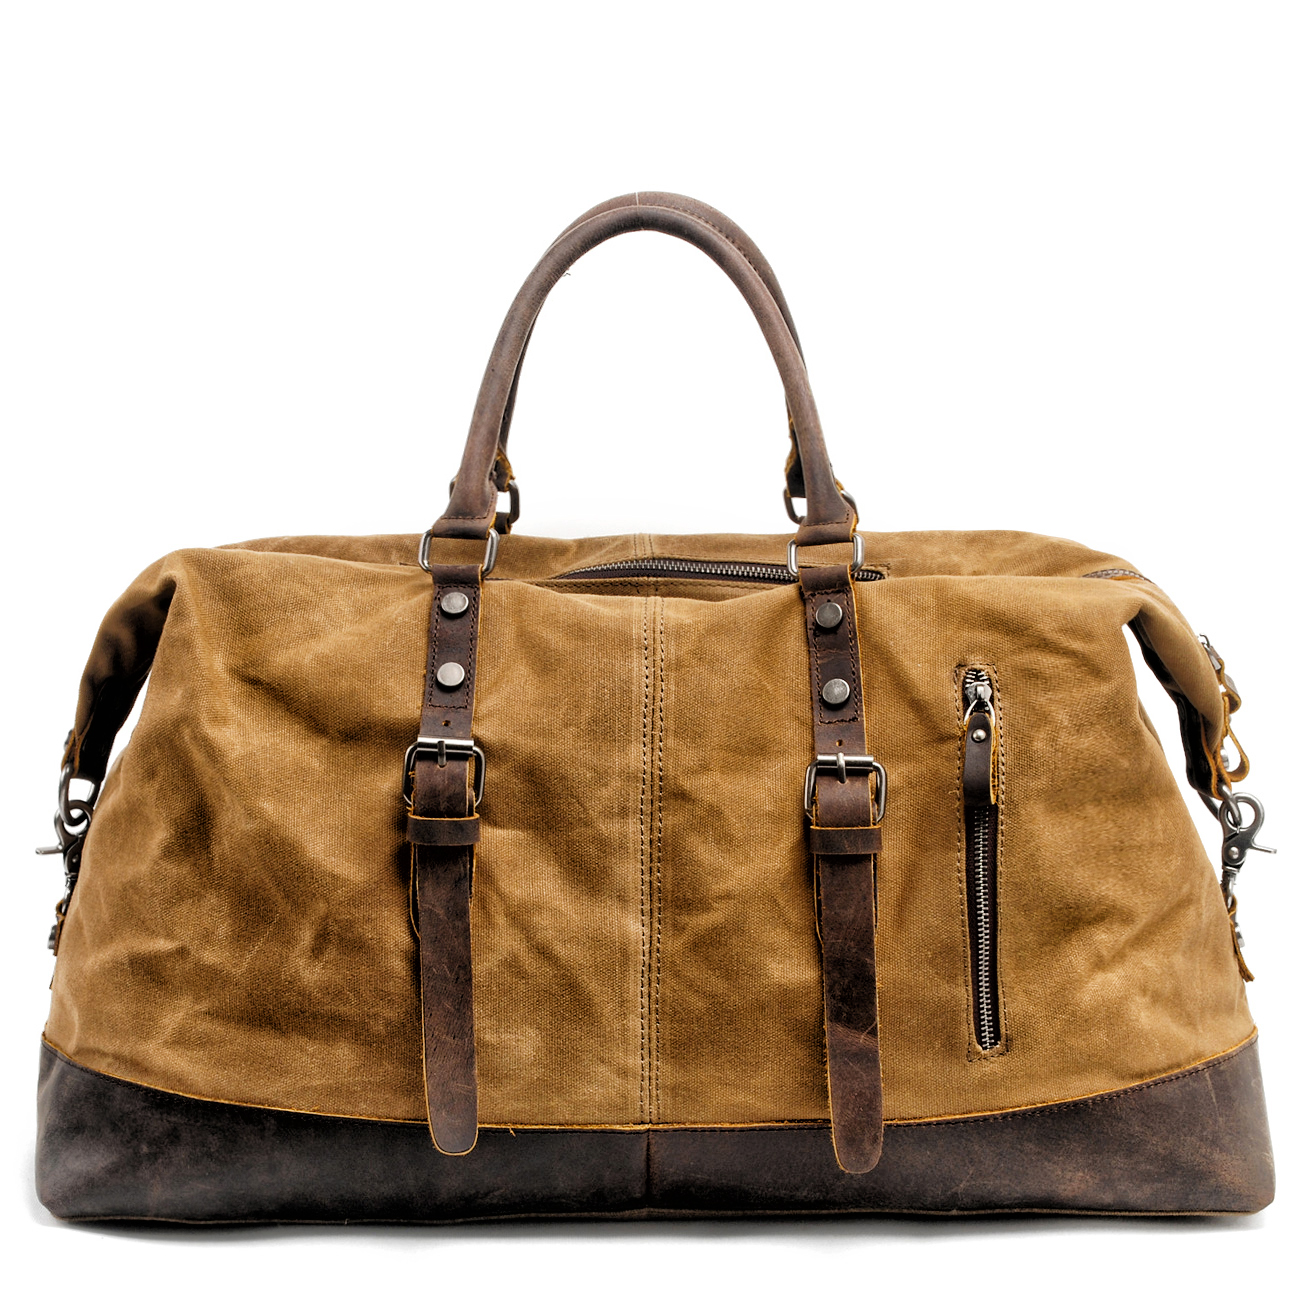 MUCHUAN Men Travel Bags M Hand Luggage Bags Canvas Leather Travel Duffel Bags Shoulder Bags Large